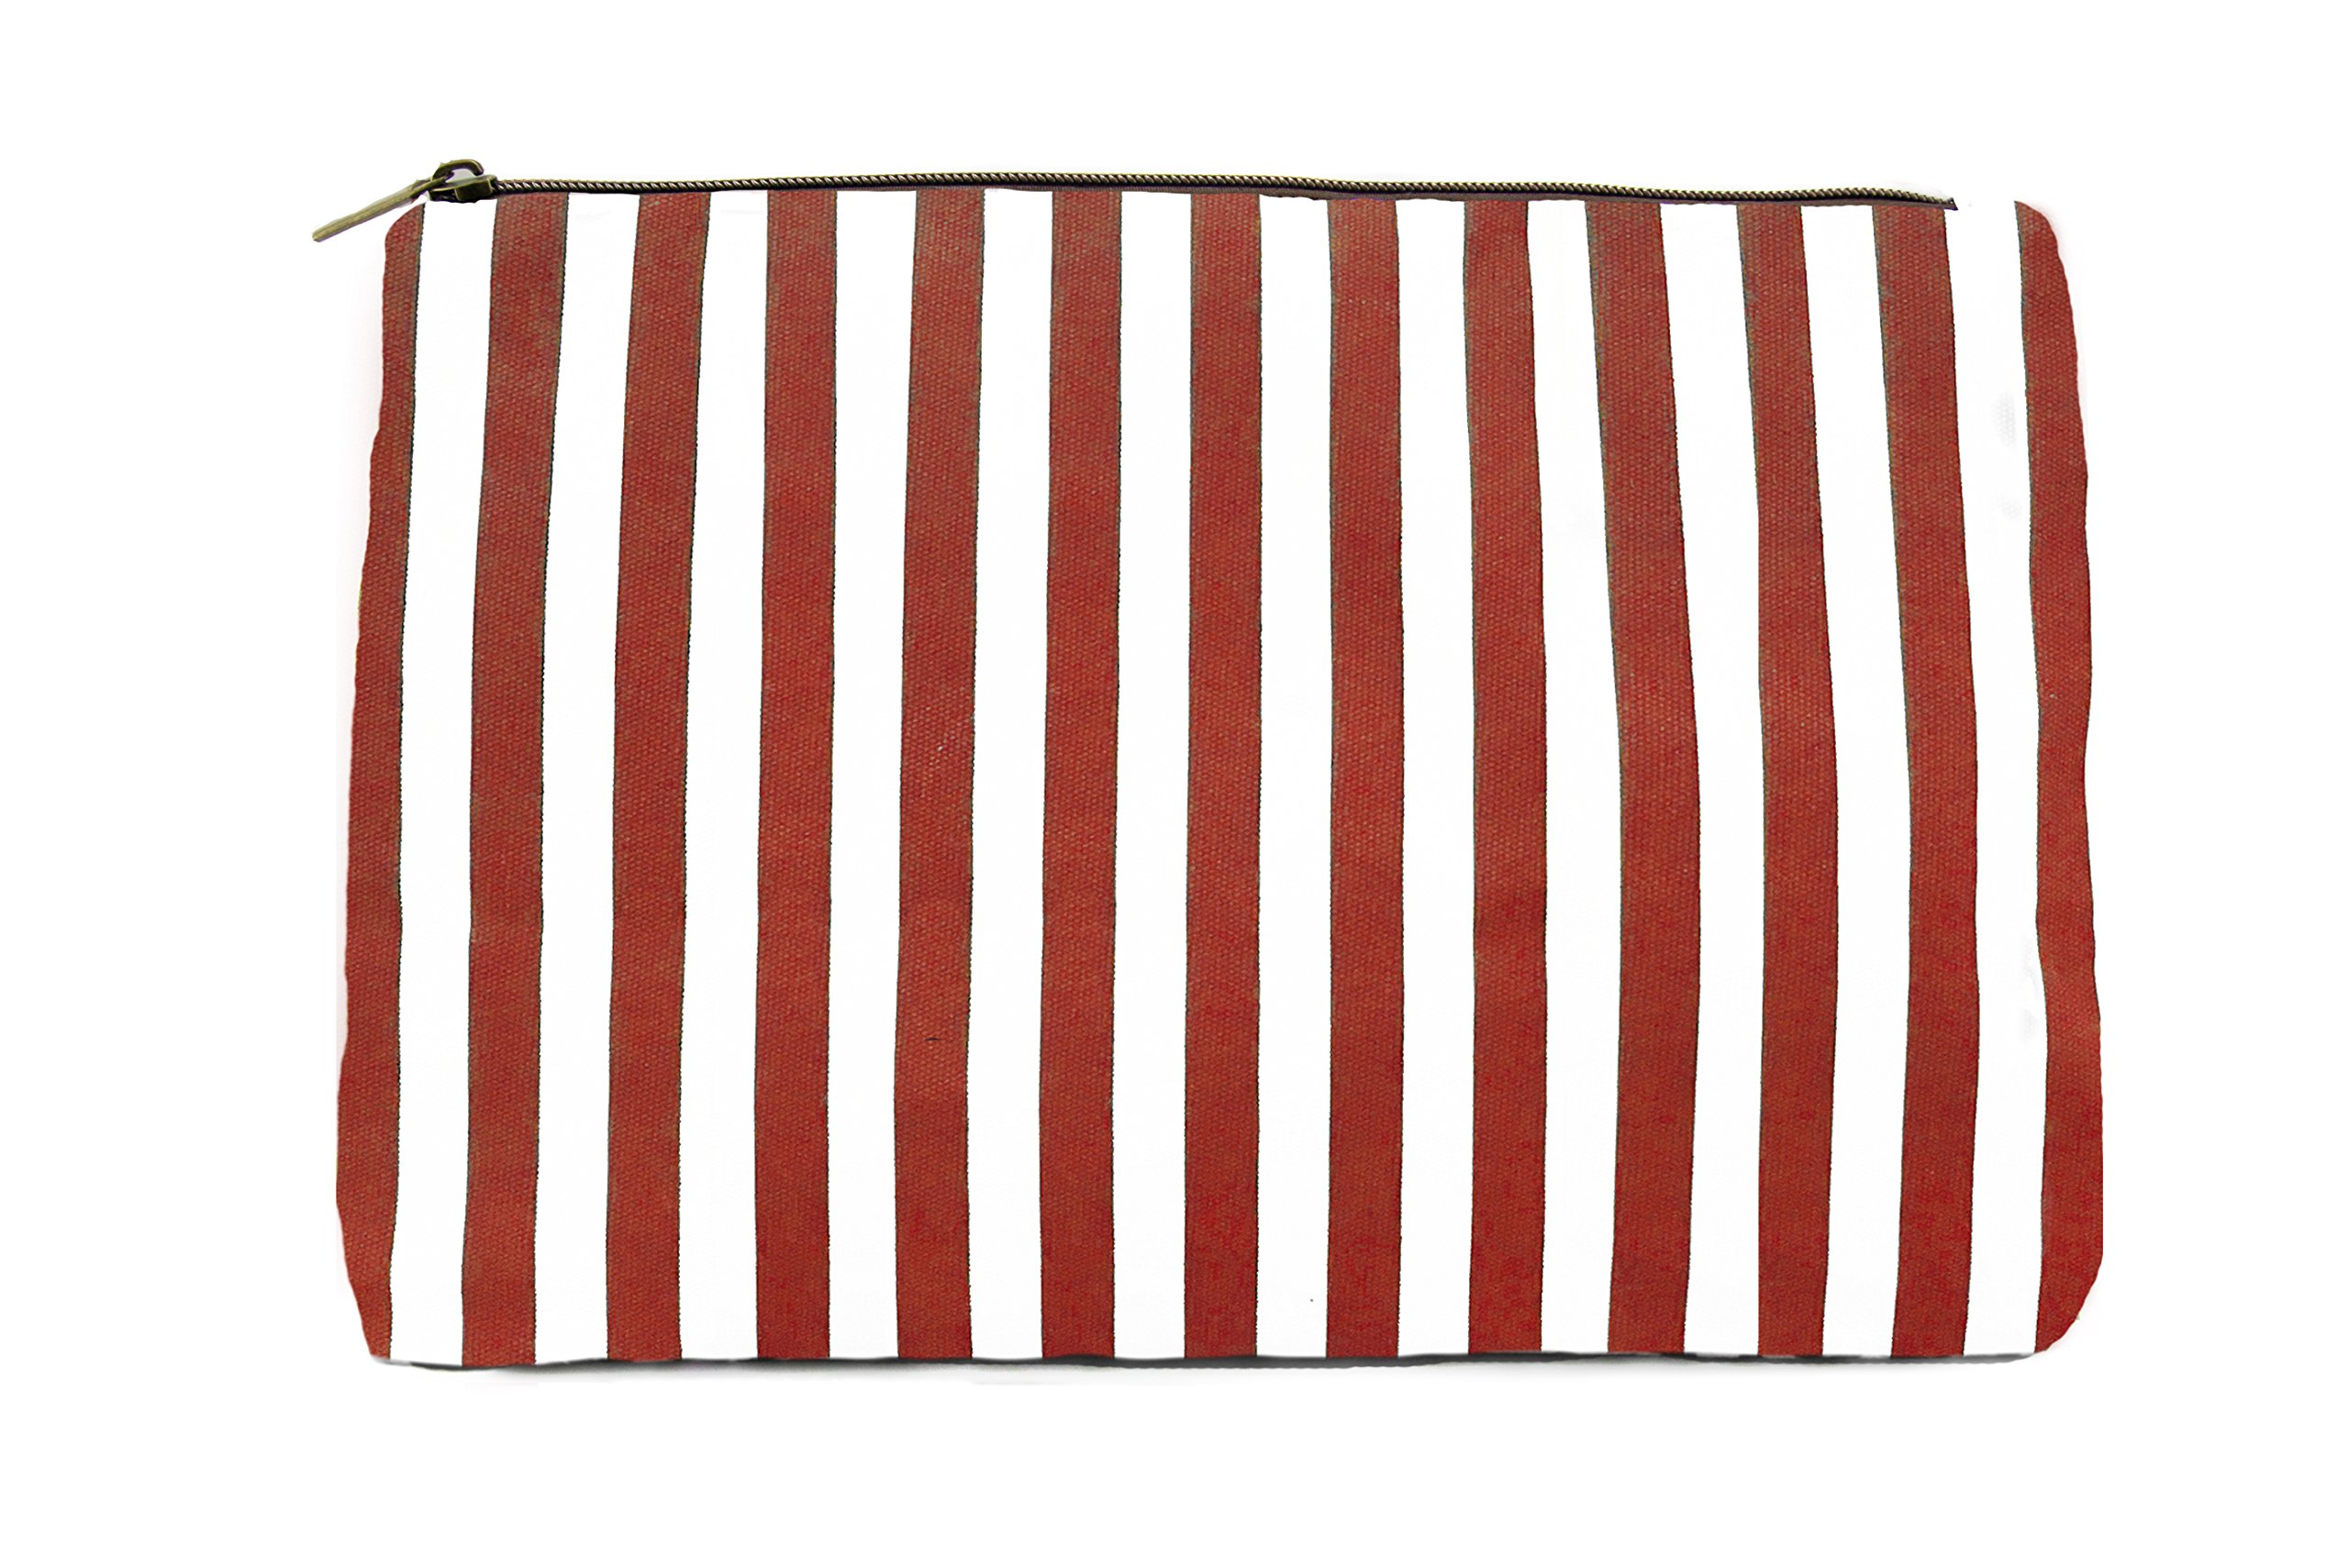 Limited Time Sale - Red Womens Striped Cosmetic Bag, Makeup Bag, Toiletry Bag, Organizer Bag, Small Travel Bag, Cosmetic Case, Makeup Pouch, Wallet, Jewelry Travel Bag (Red) MSRP $38